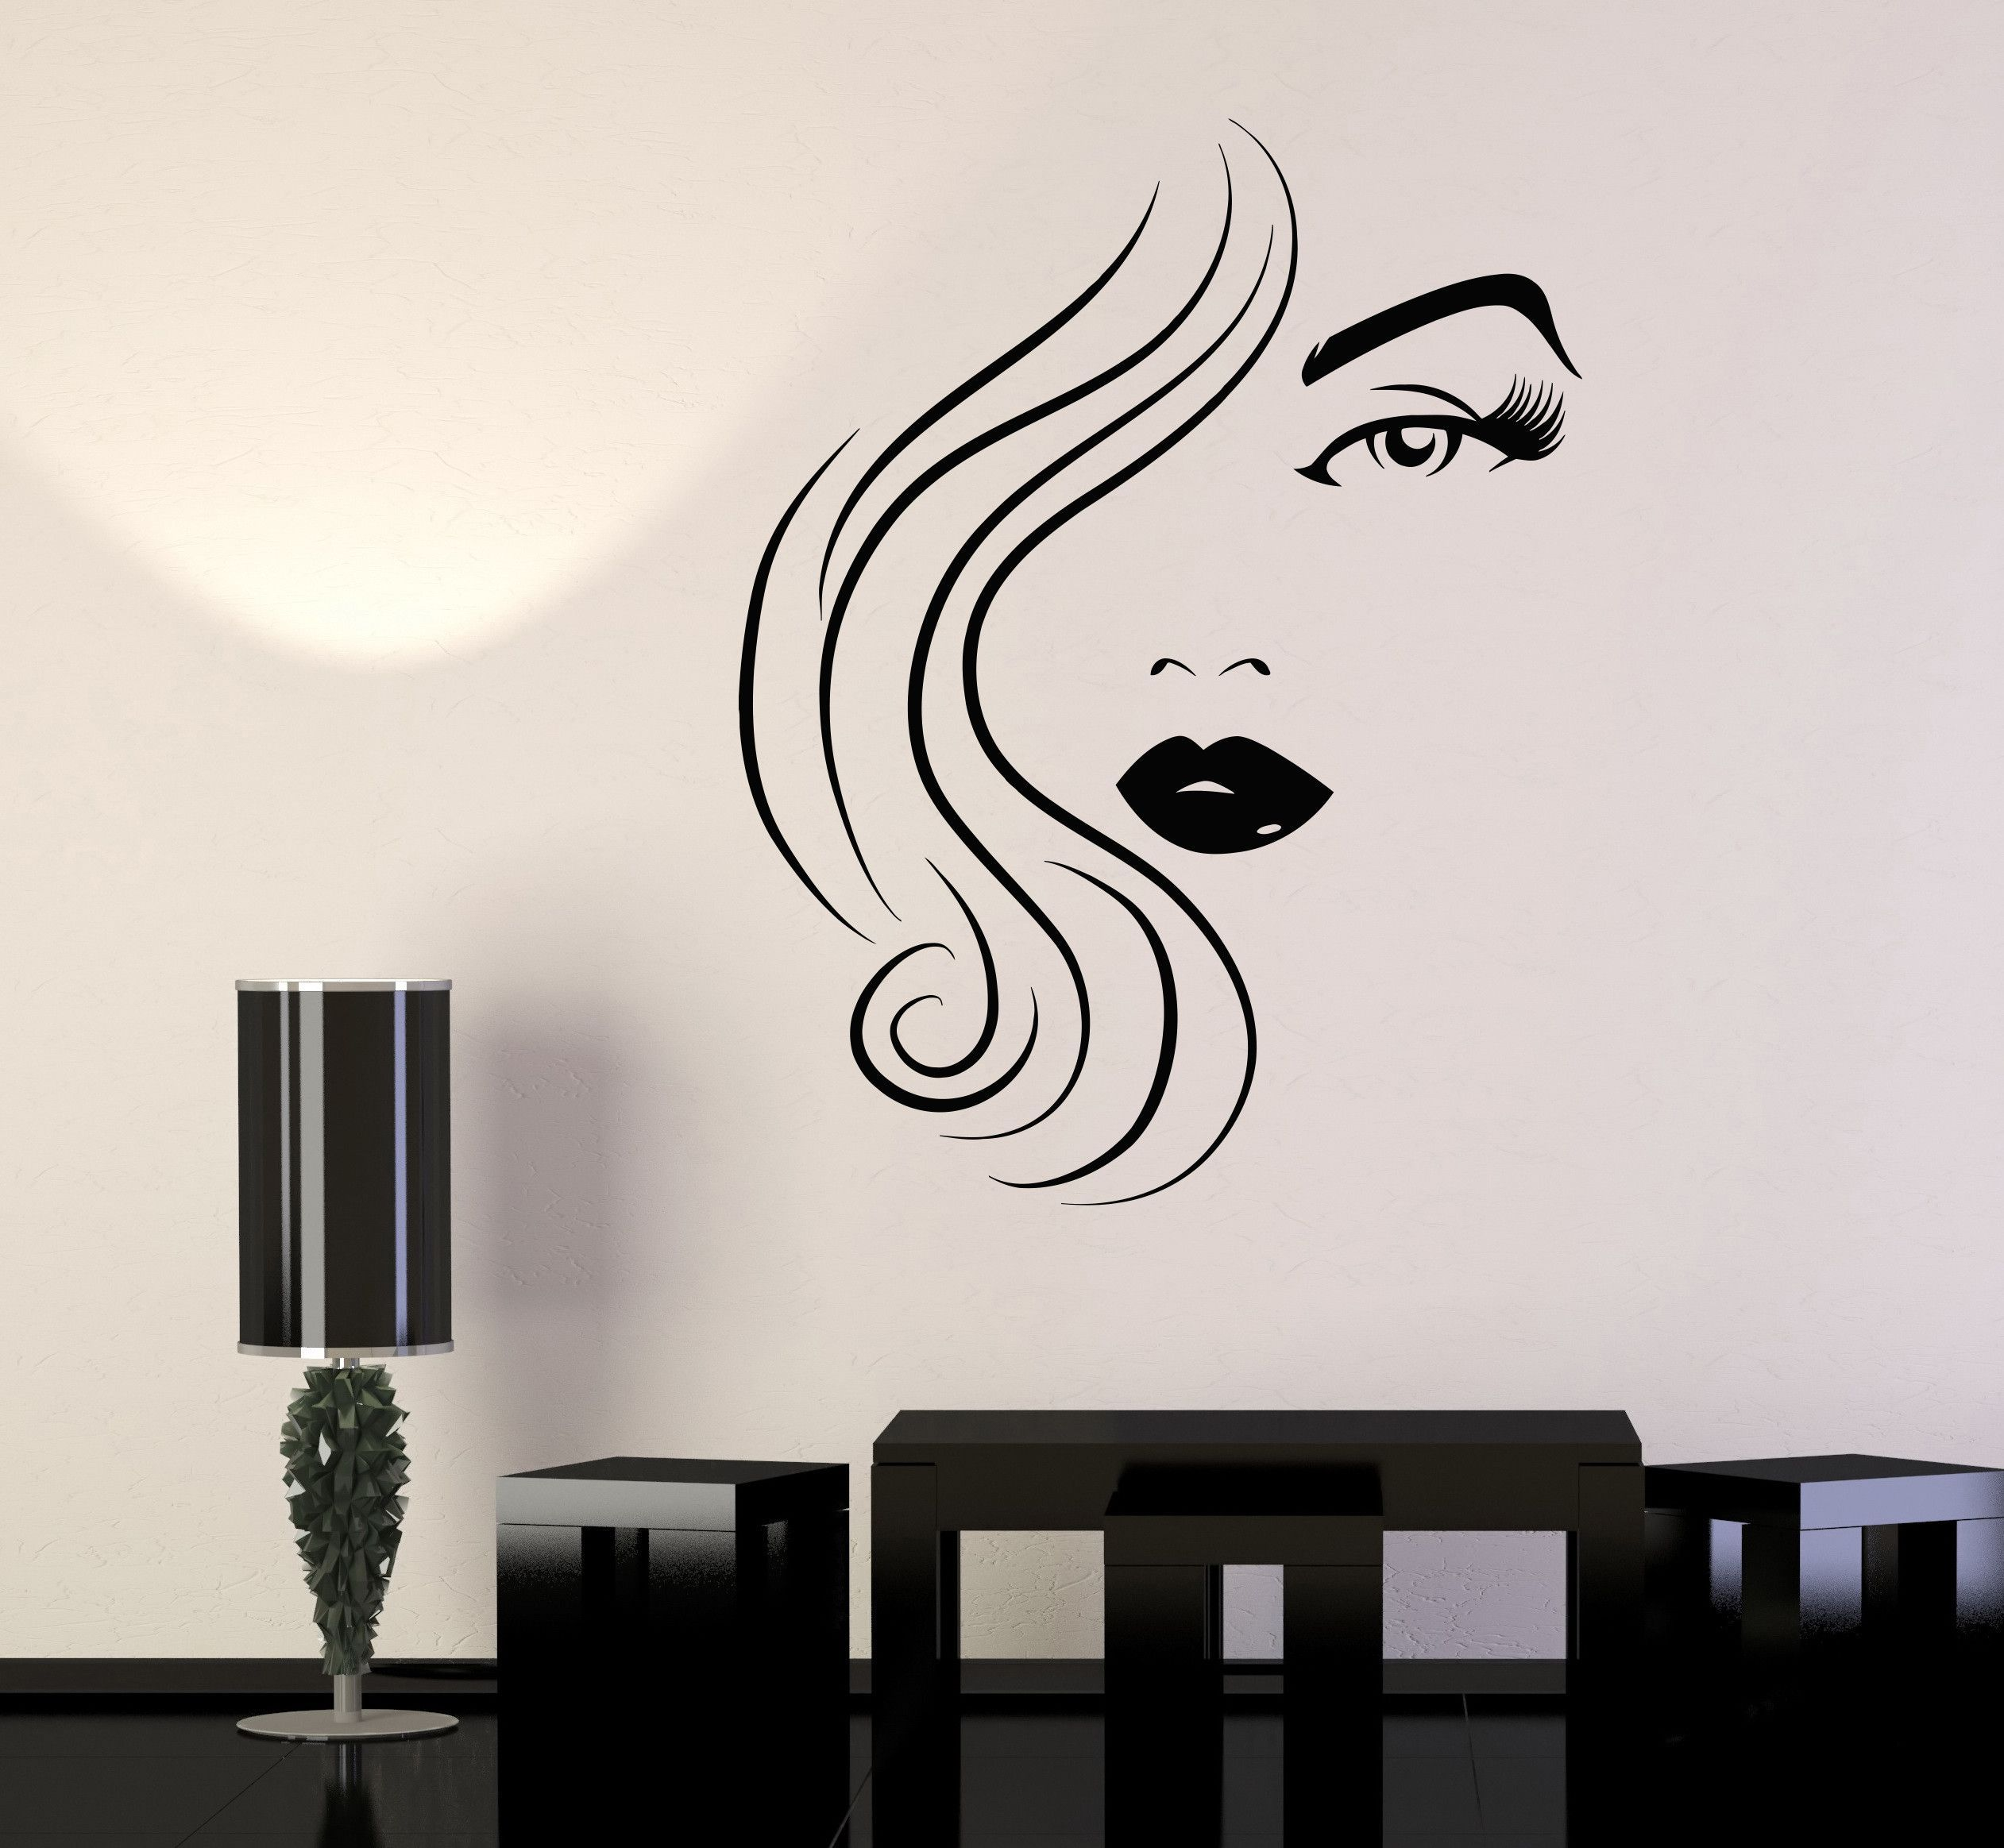 Vinyl wall decal beauty hair salon woman model sexy girl eye lips vinyl wall decal beauty hair salon woman model sexy girl eye lips stickers 1486ig amipublicfo Images